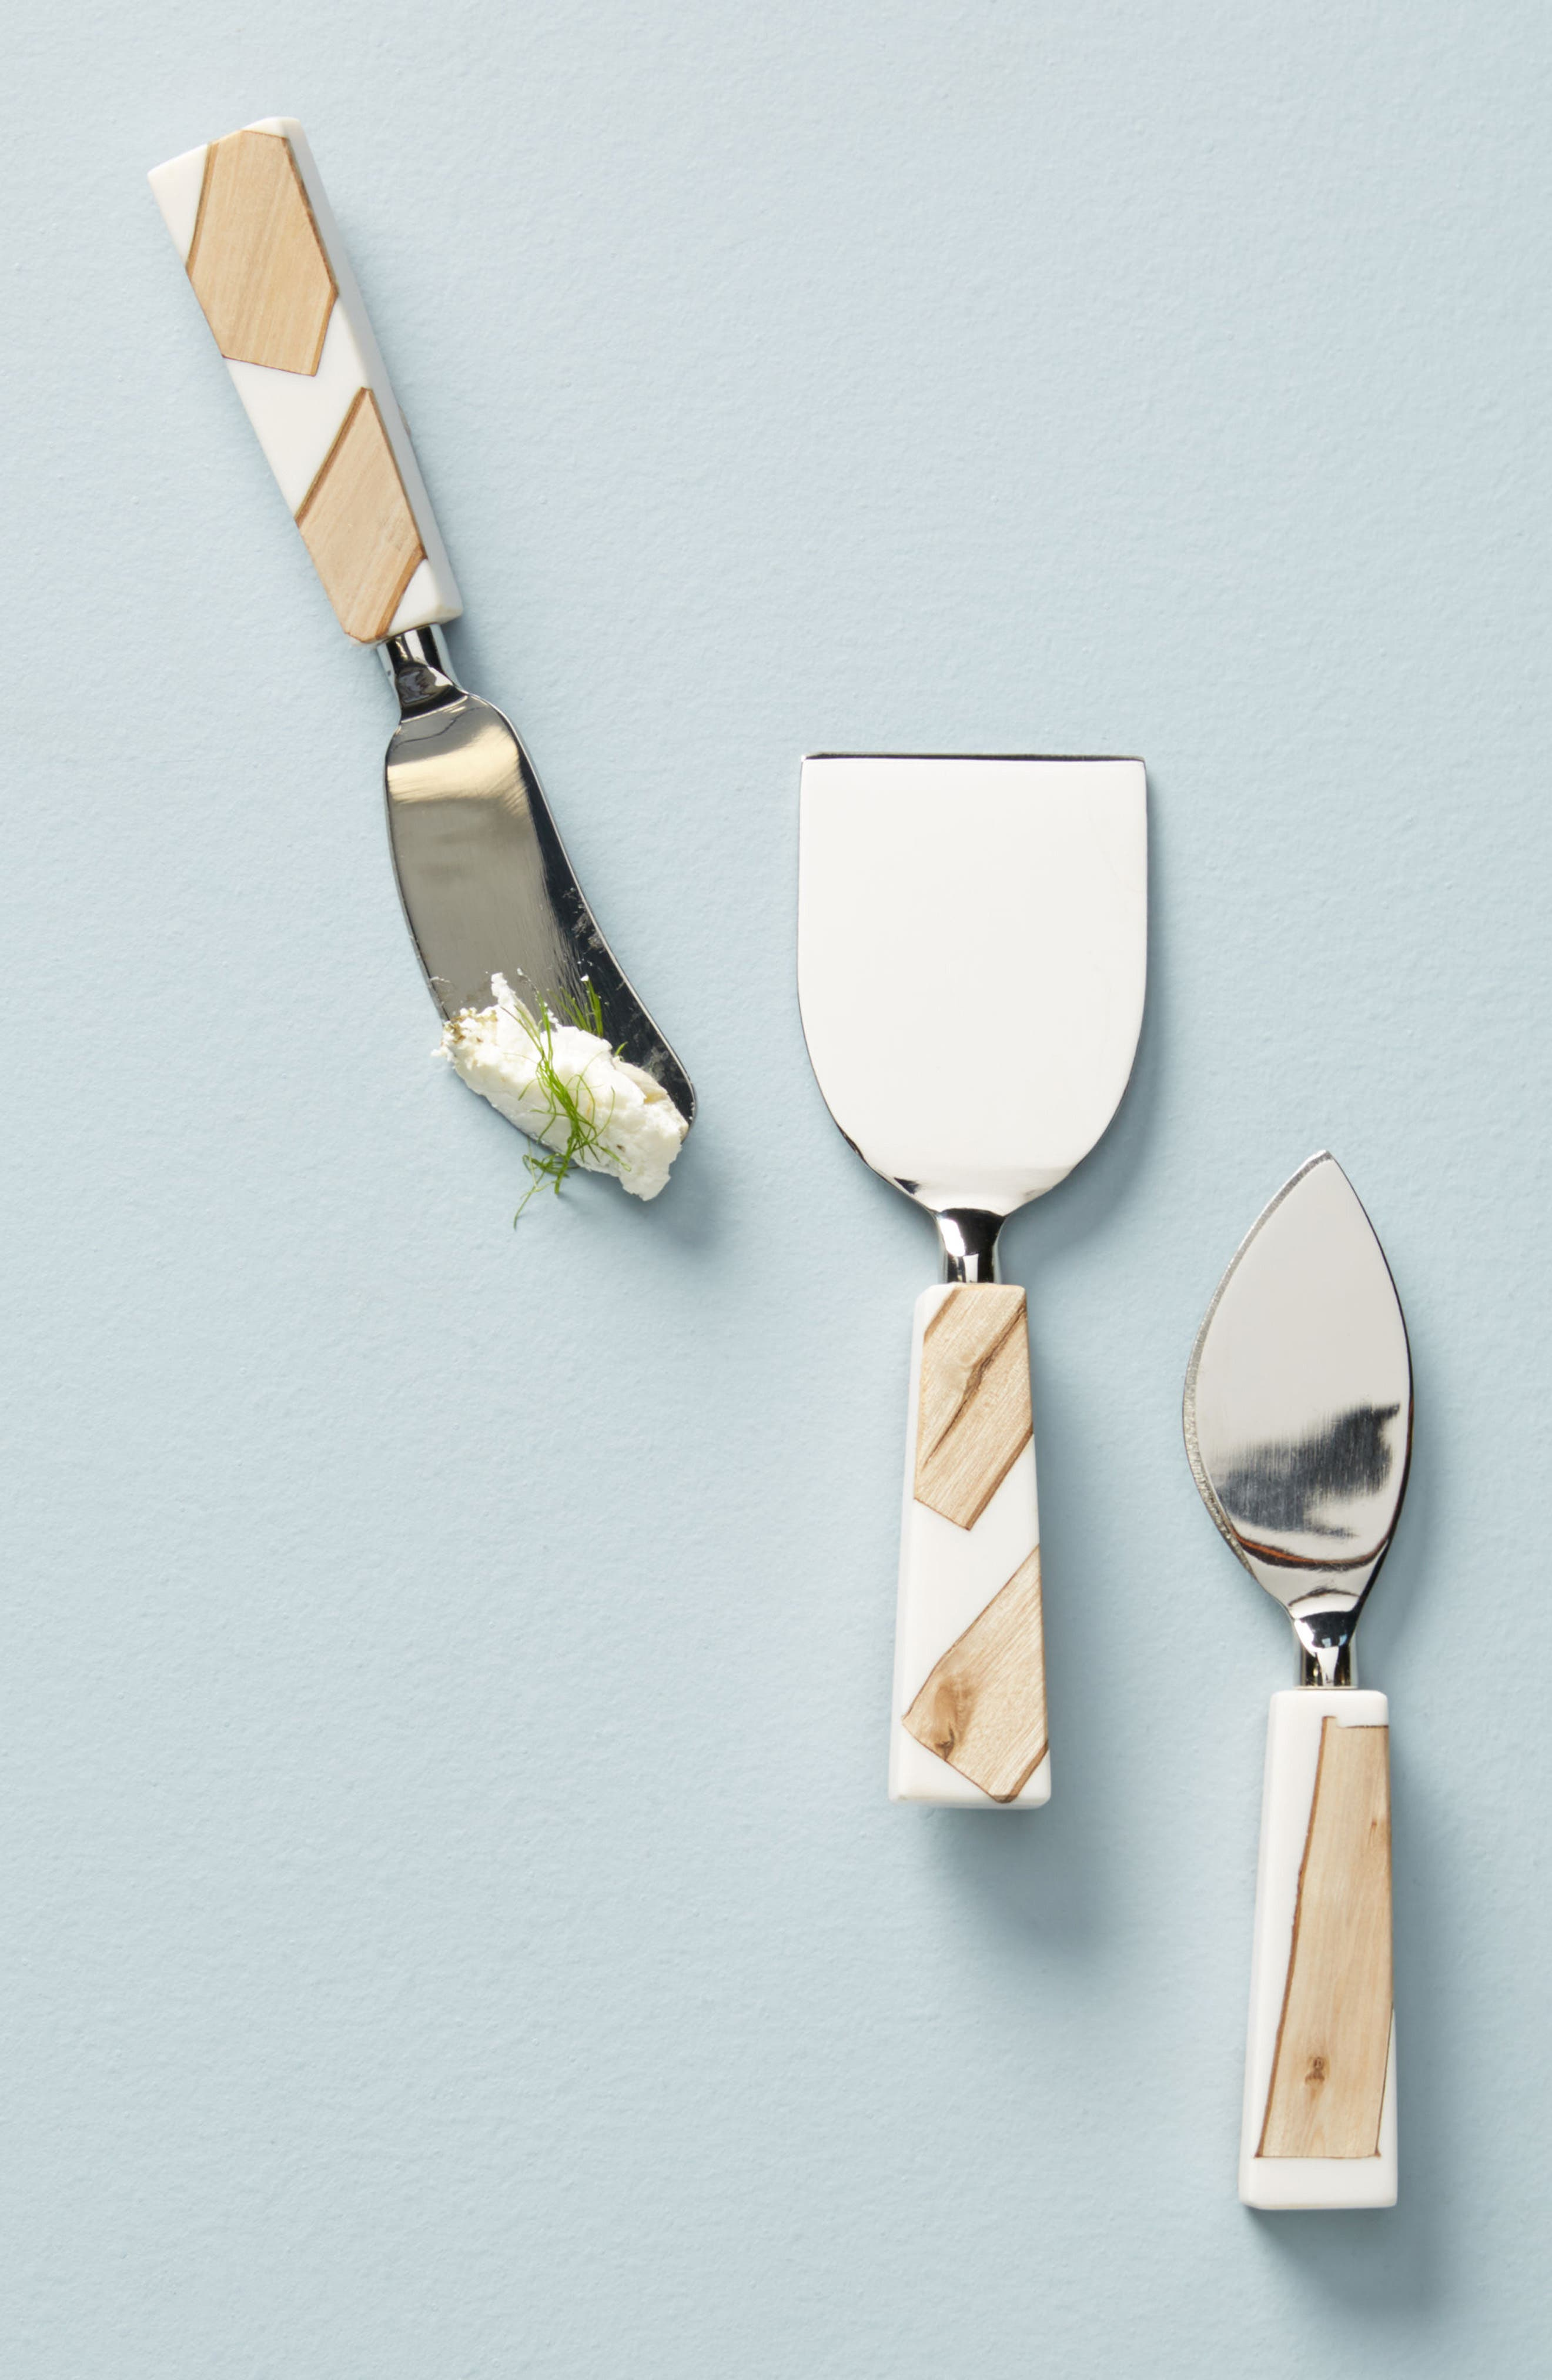 Alternate Image 1 Selected - Anthropologie Catbird Set of 3 Cheese Knives